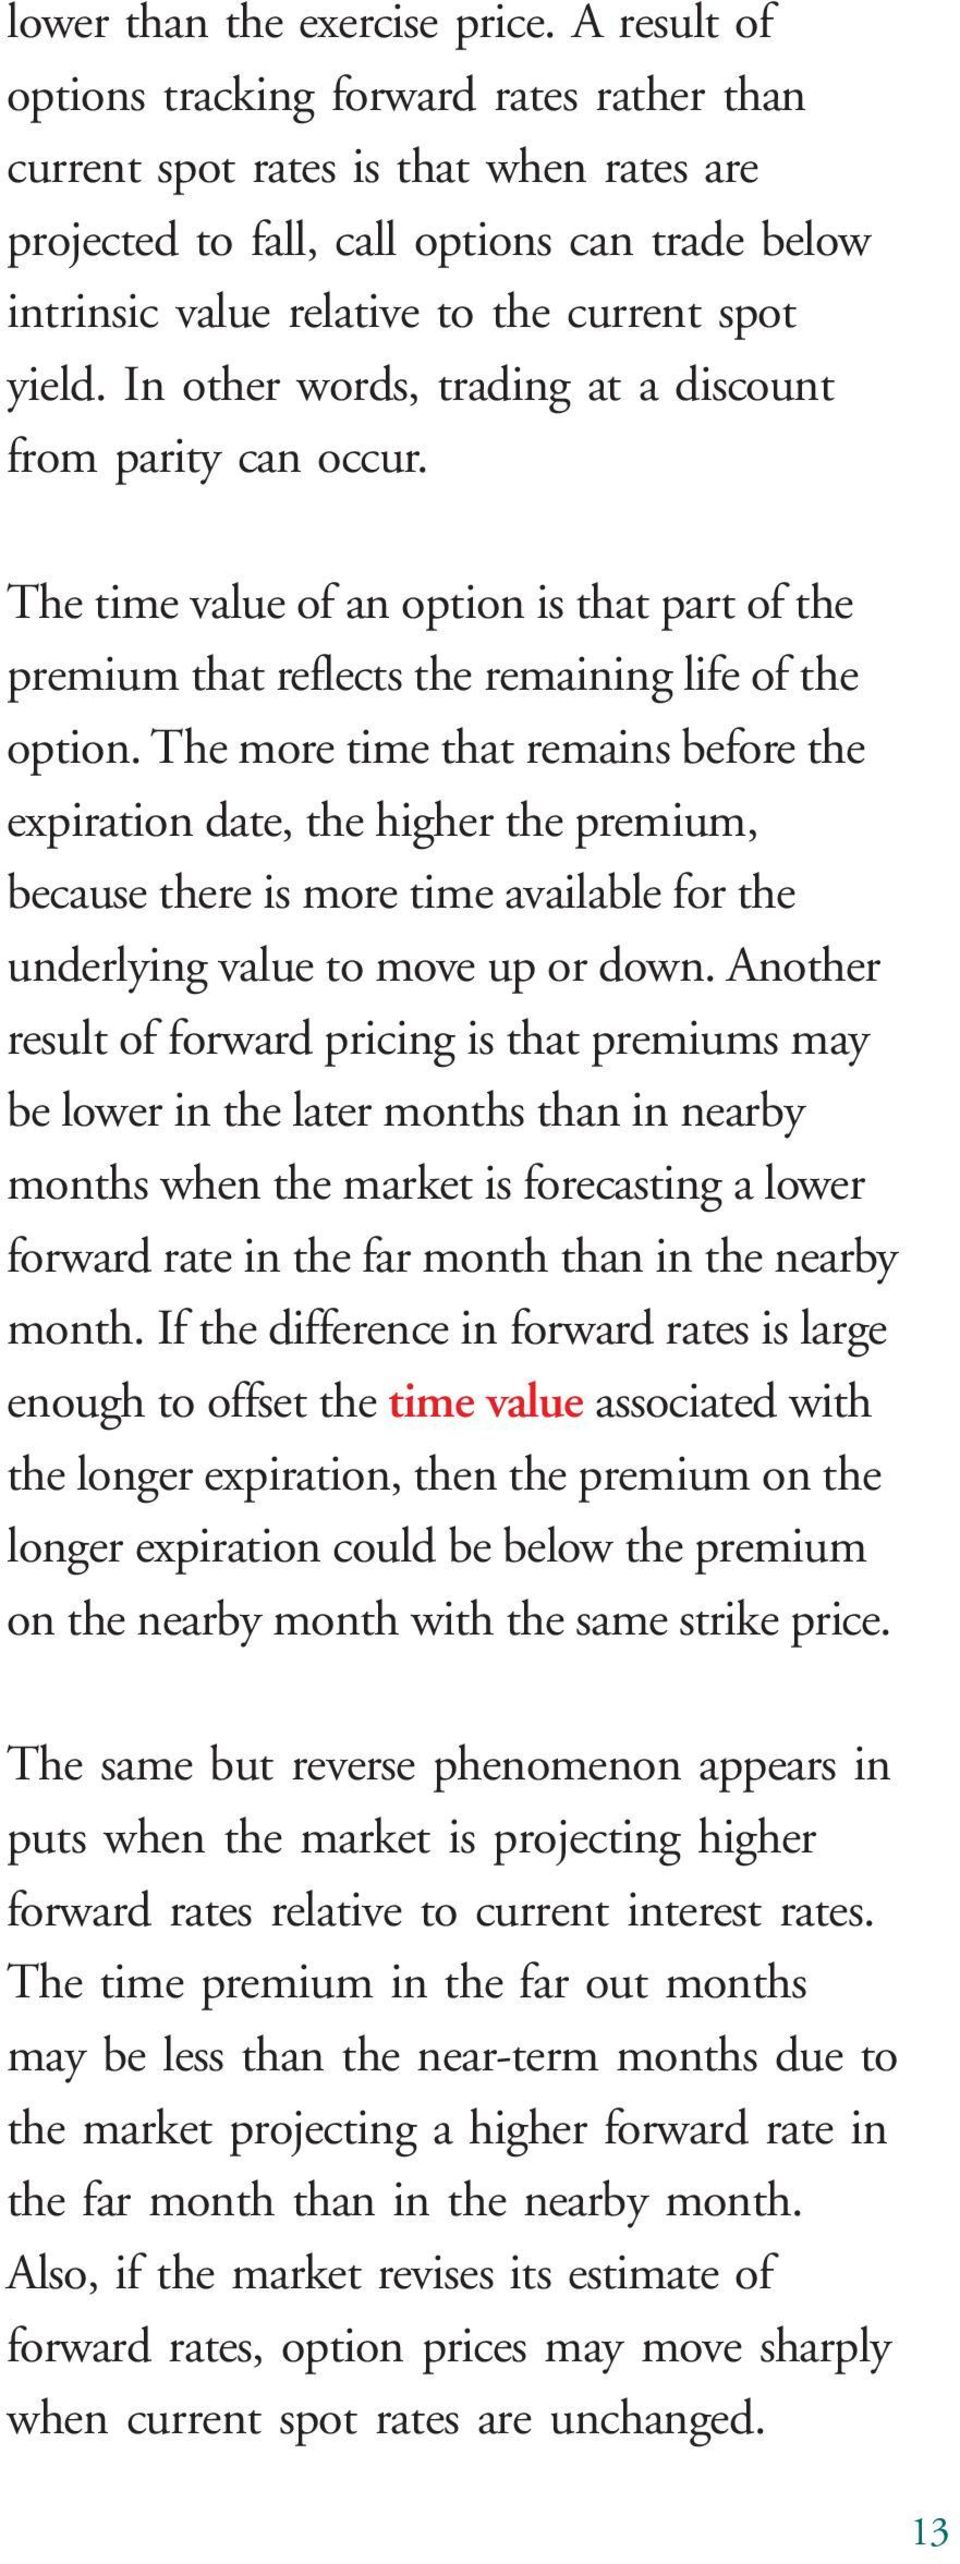 In other words, trading at a discount from parity can occur. The time value of an option is that part of the premium that reflects the remaining life of the option.